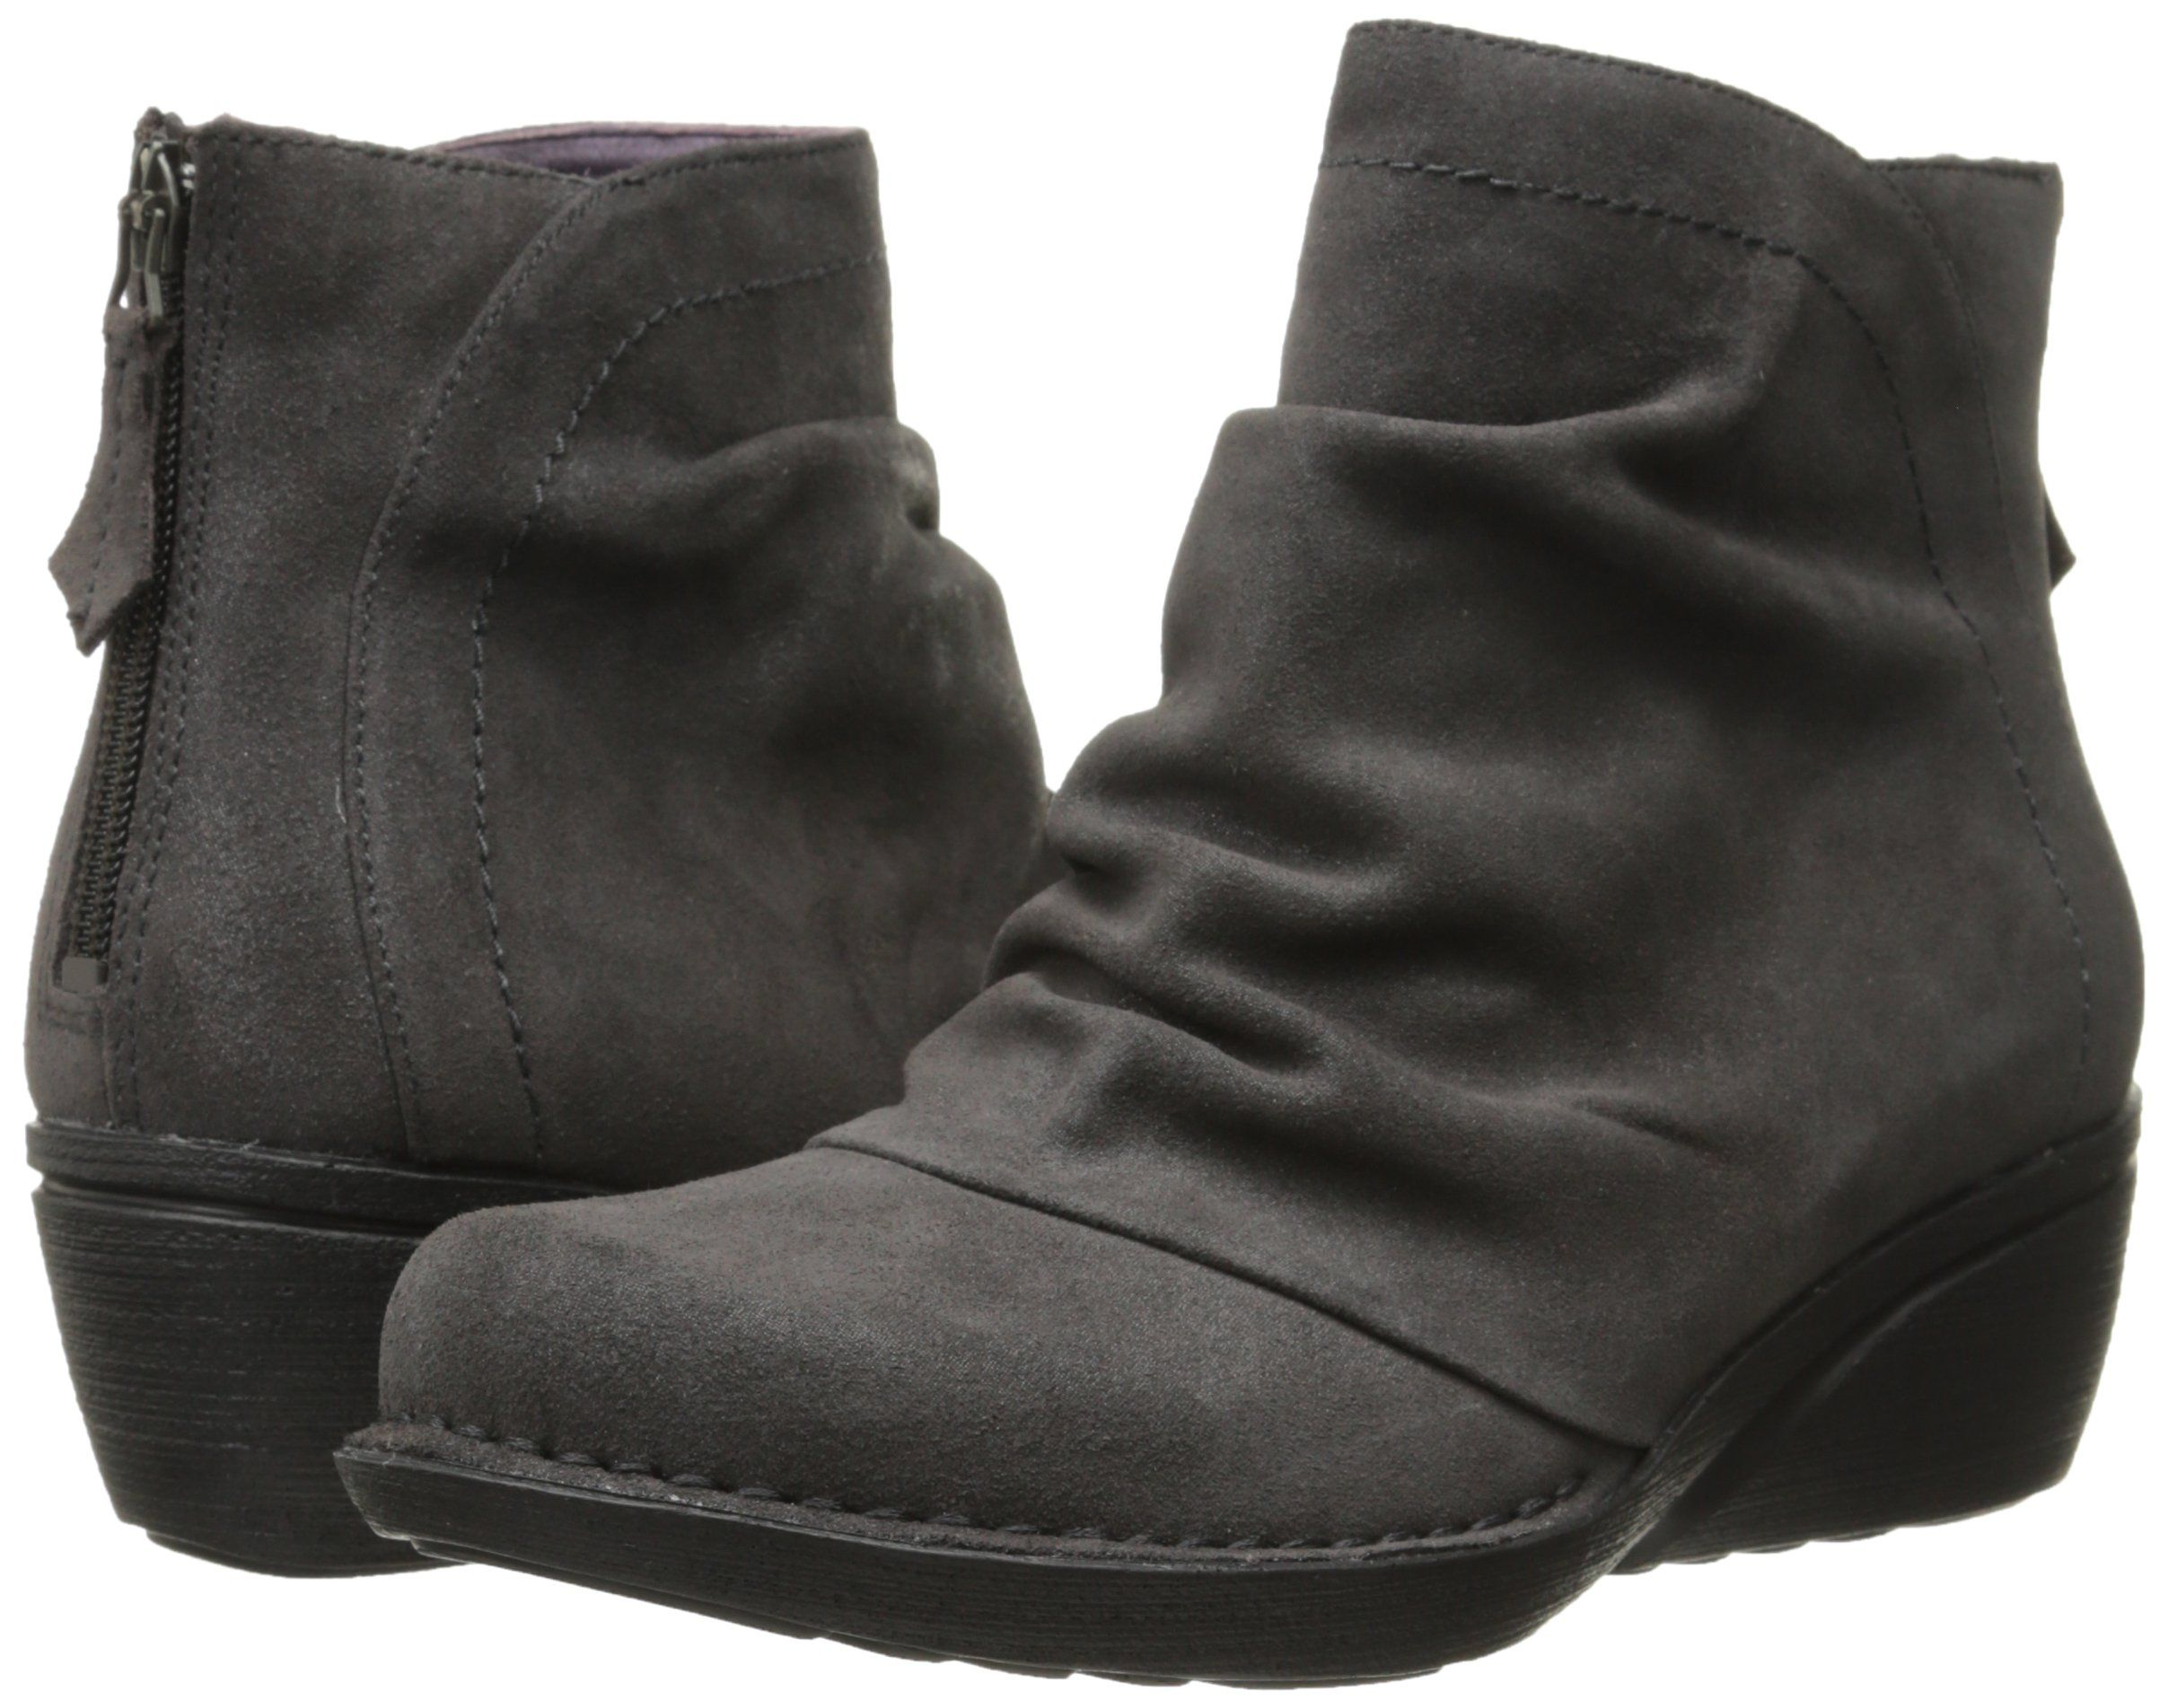 comforter nayali boots these pin and walking skills craftsmanship ancient preserving for comfortable booties